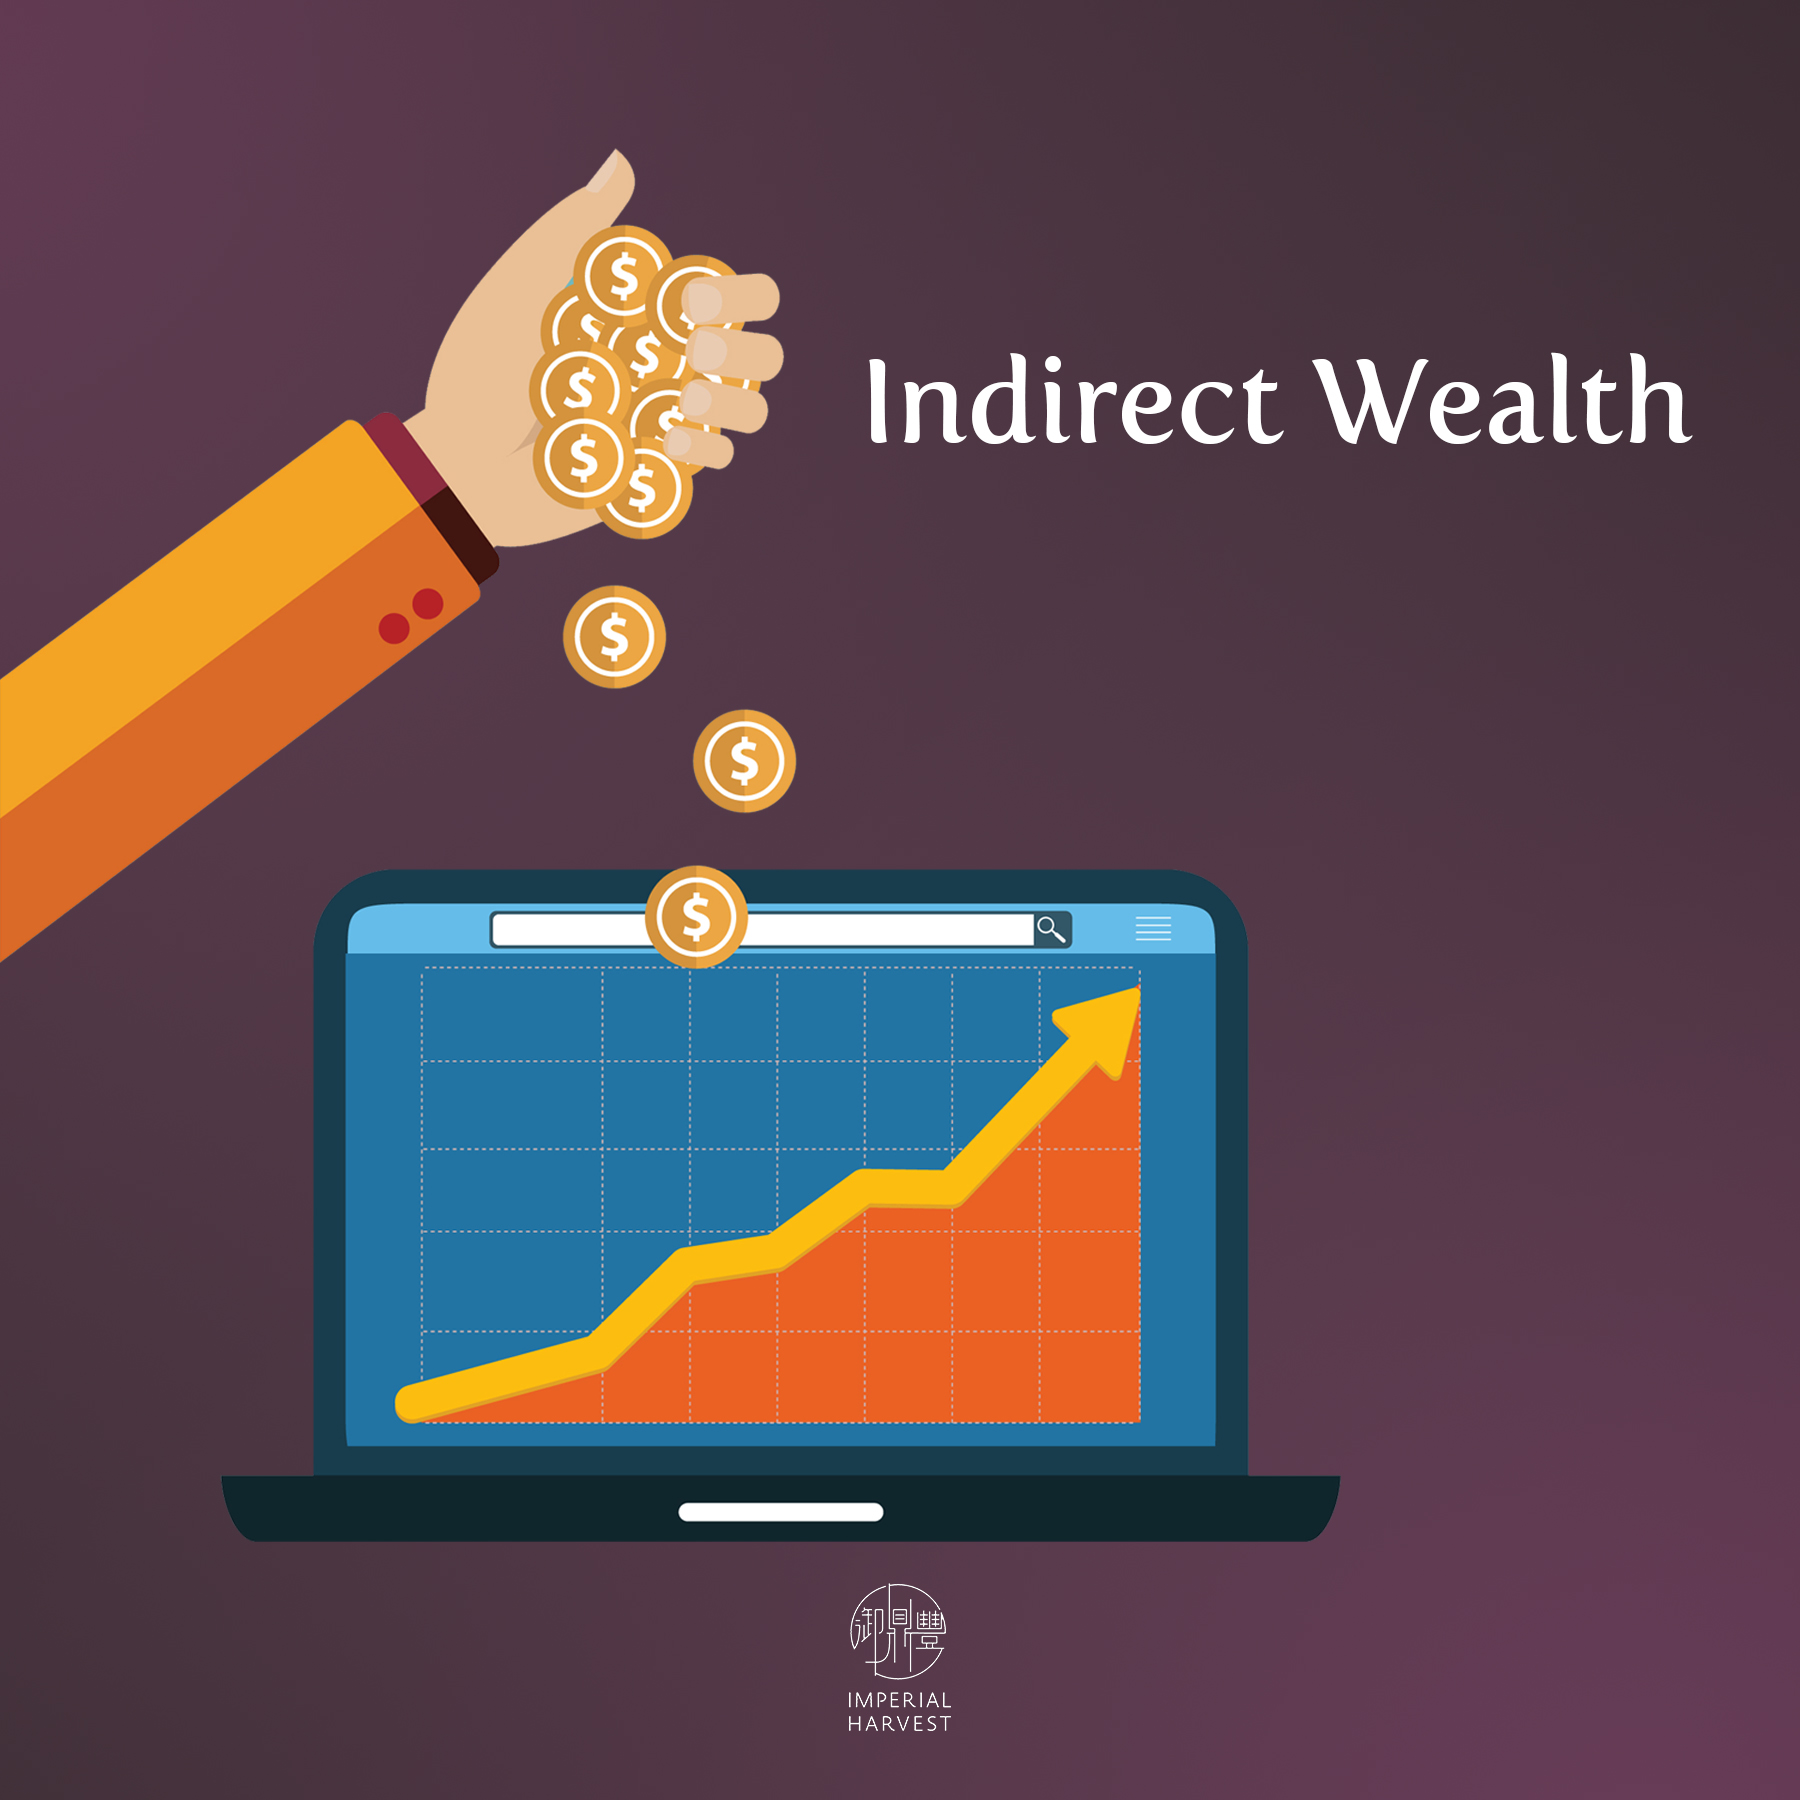 indirect wealth